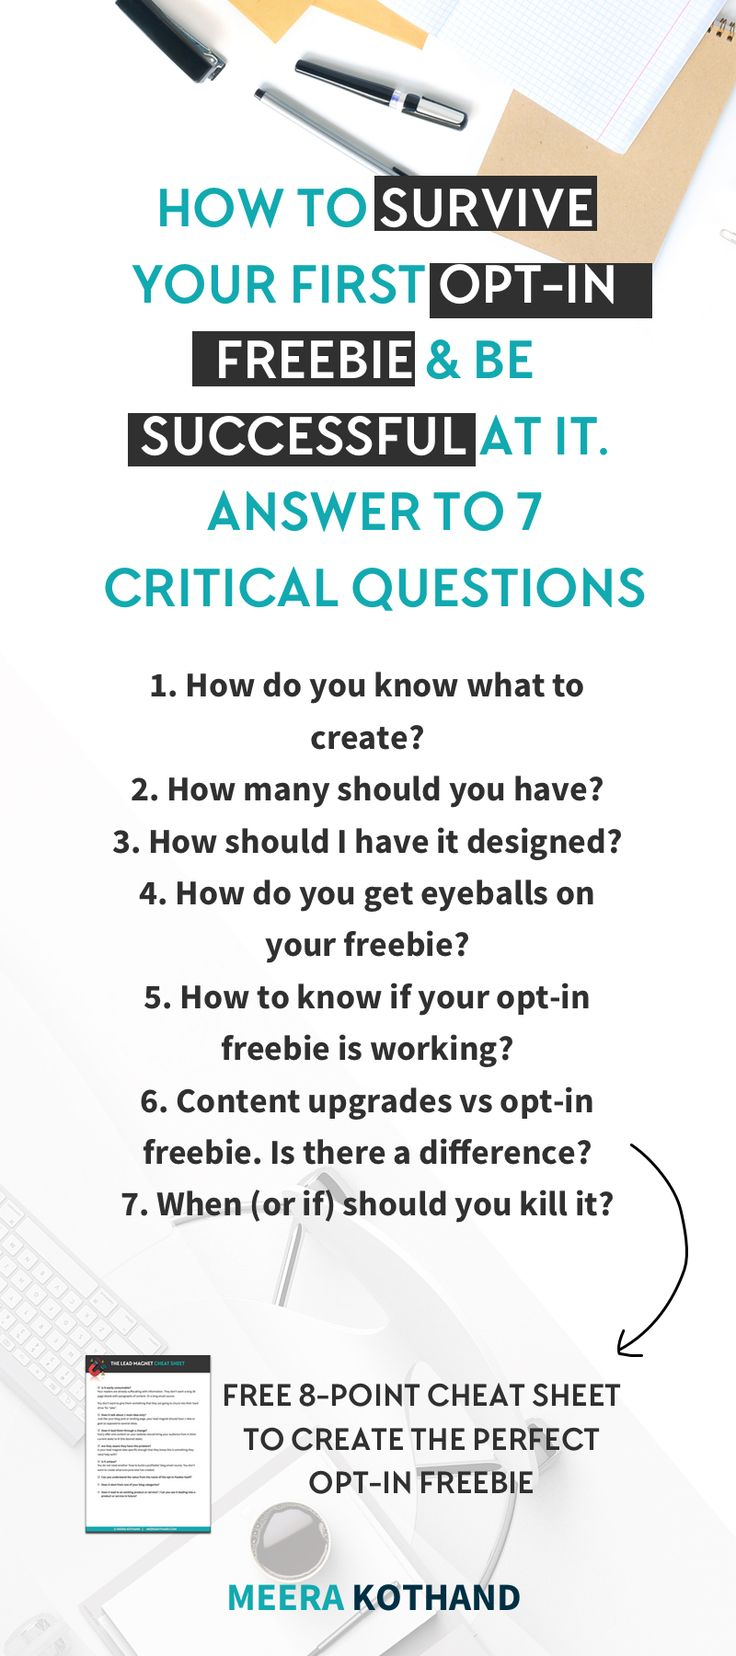 Are you in the midst of creating your first opt-in freebie? Wish you could get answers to all those pesky opt-in freebie questions on your mind?   Click to get answers to 7 burning opt-in freebie questions and a checklist to create the perfect opt-in freebie.